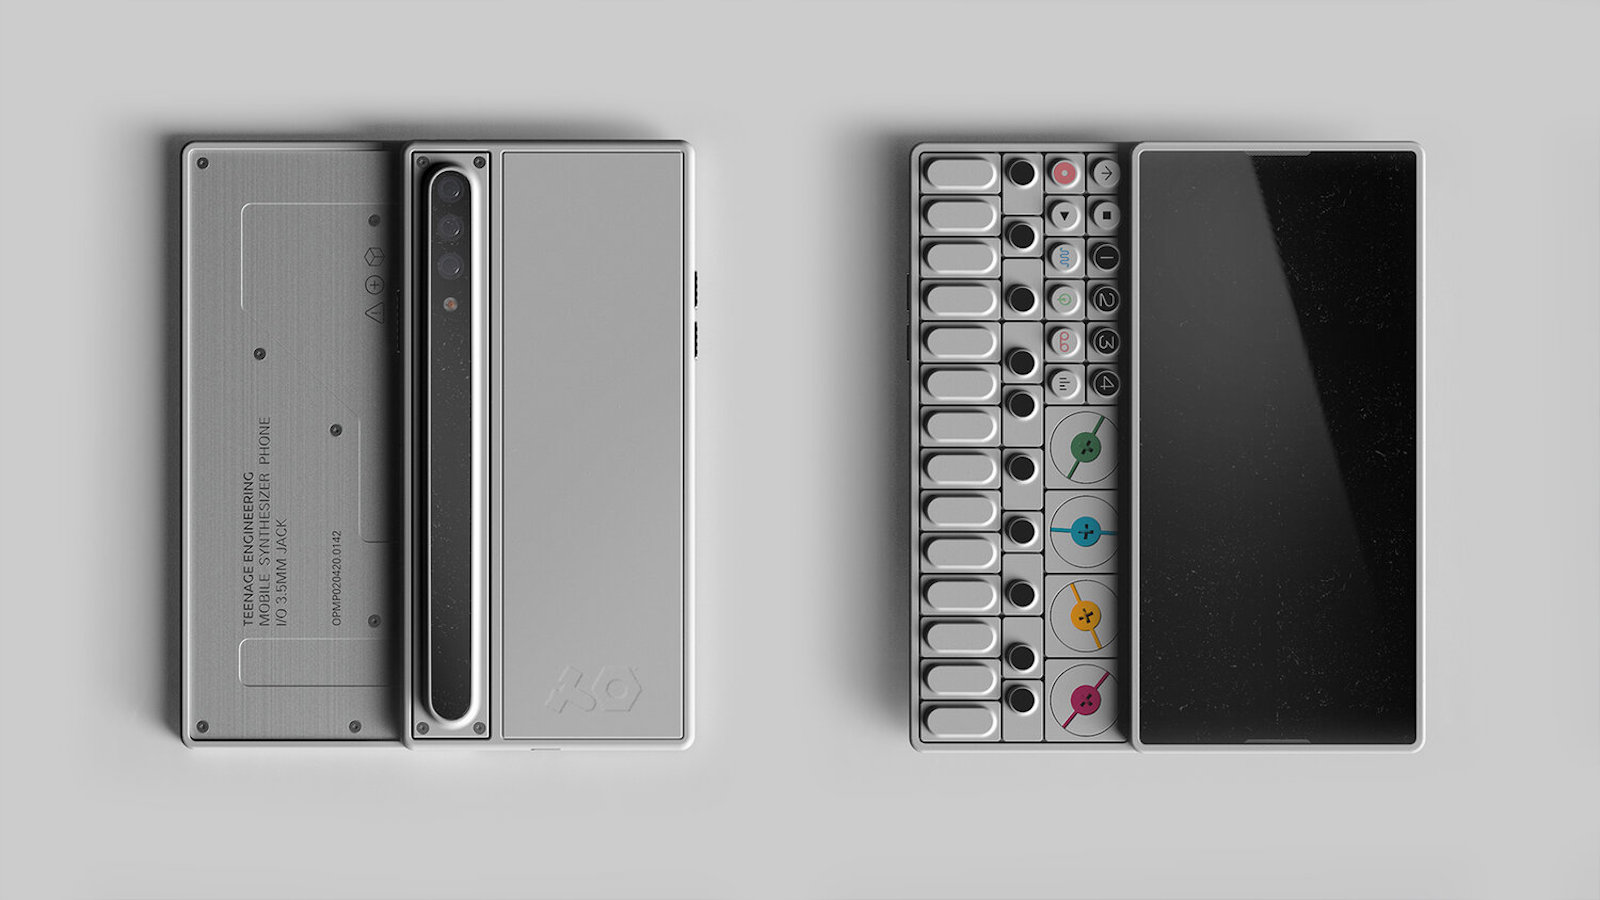 GRIS Design OP-S Conceptual Smartphone features a built-in synthesizer